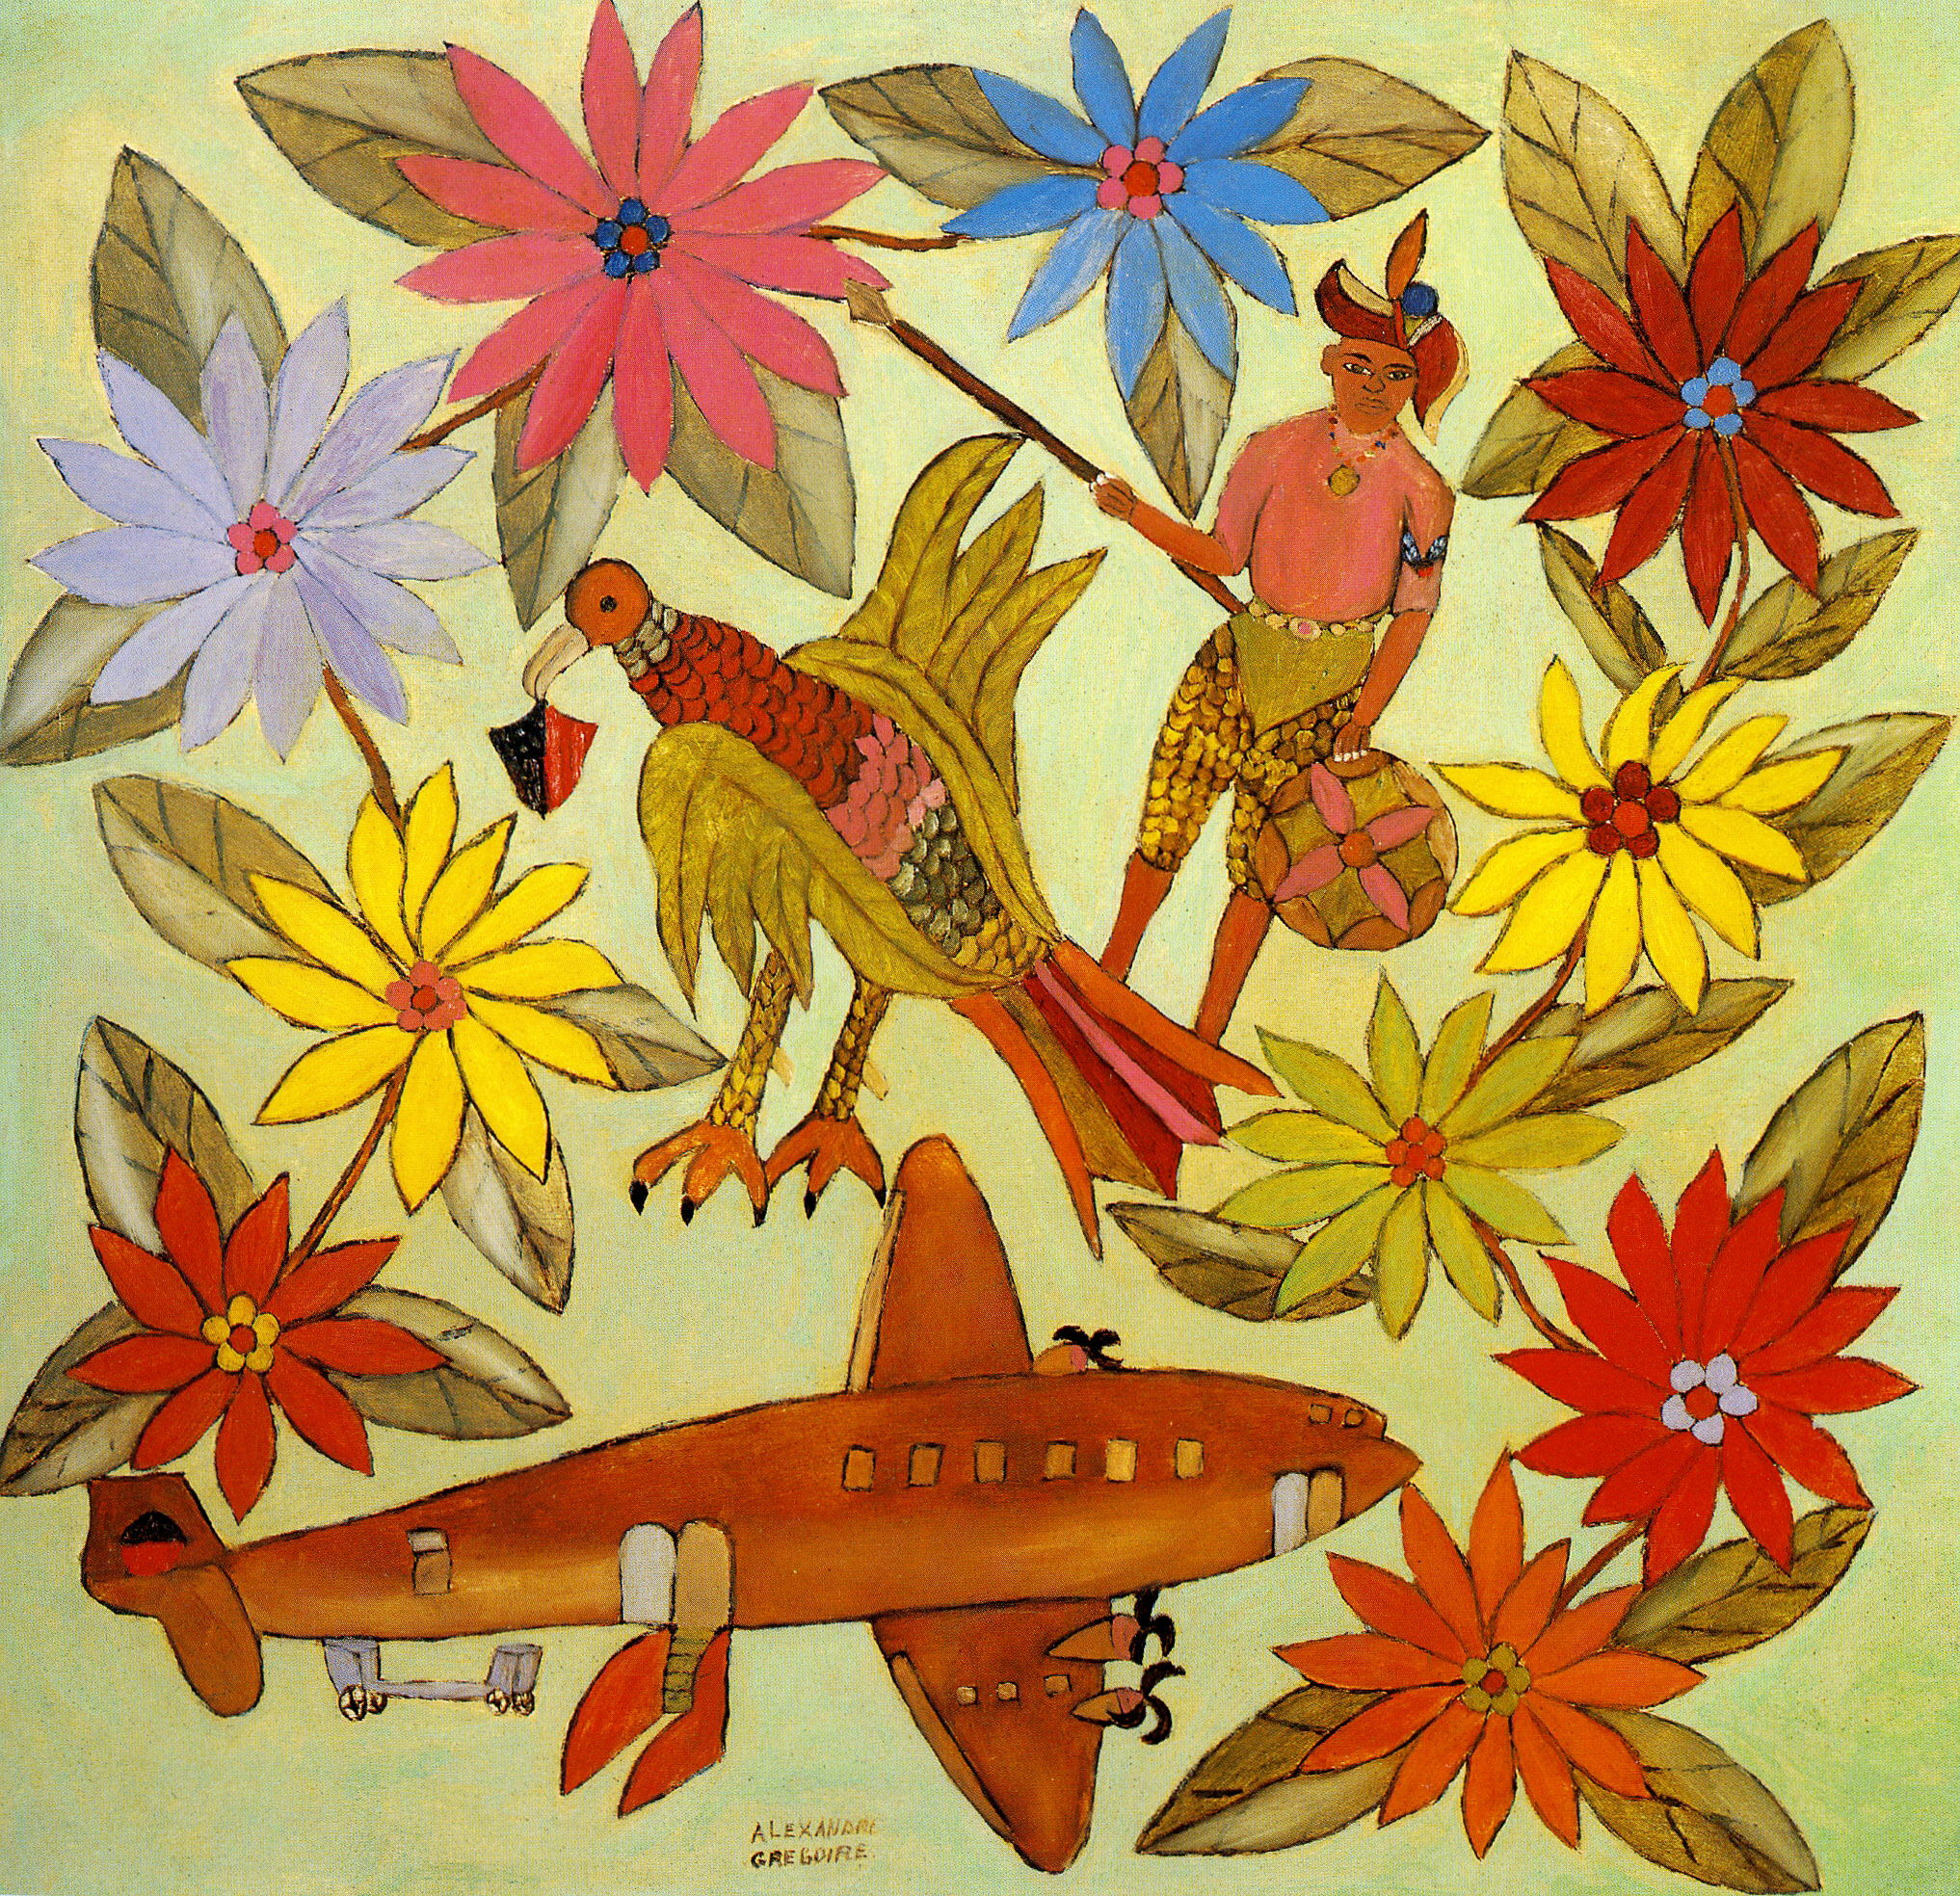 Flowers, Pentad with Haitian Crest, Indigenous Haitian and Air Haiti, 1960